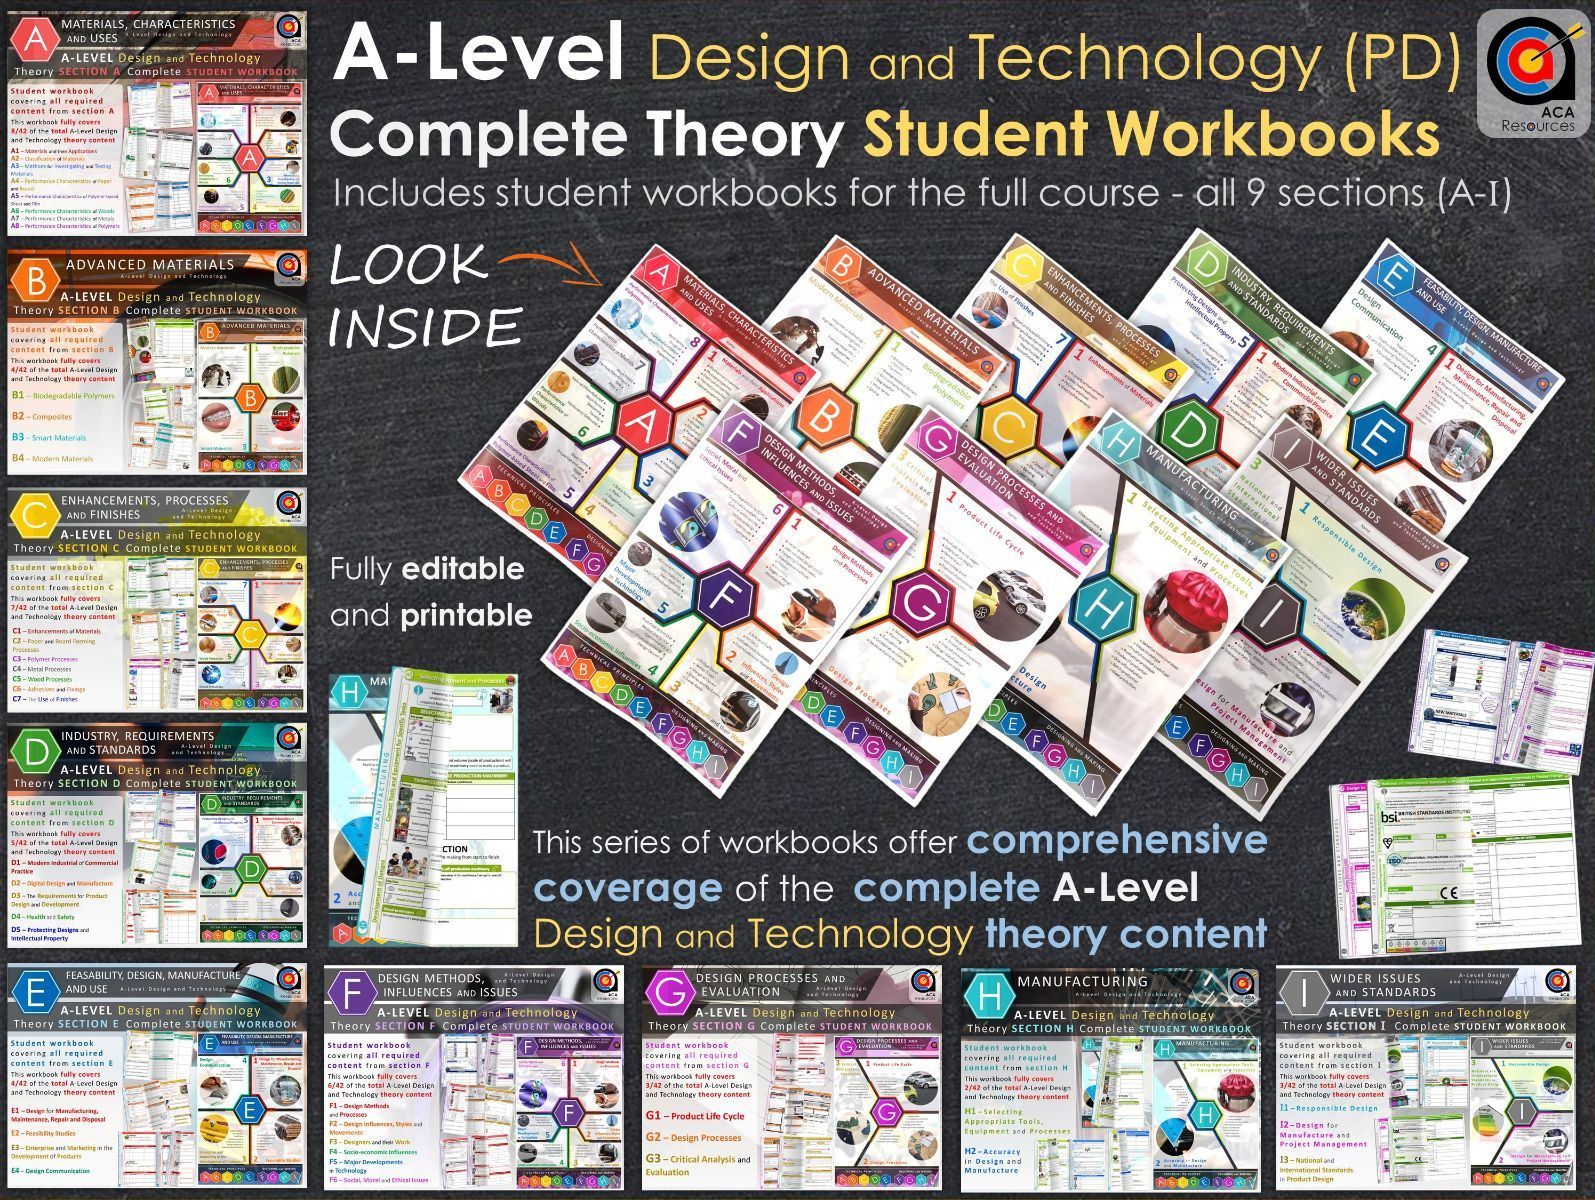 Complete A-Level DT Theory - Workbooks